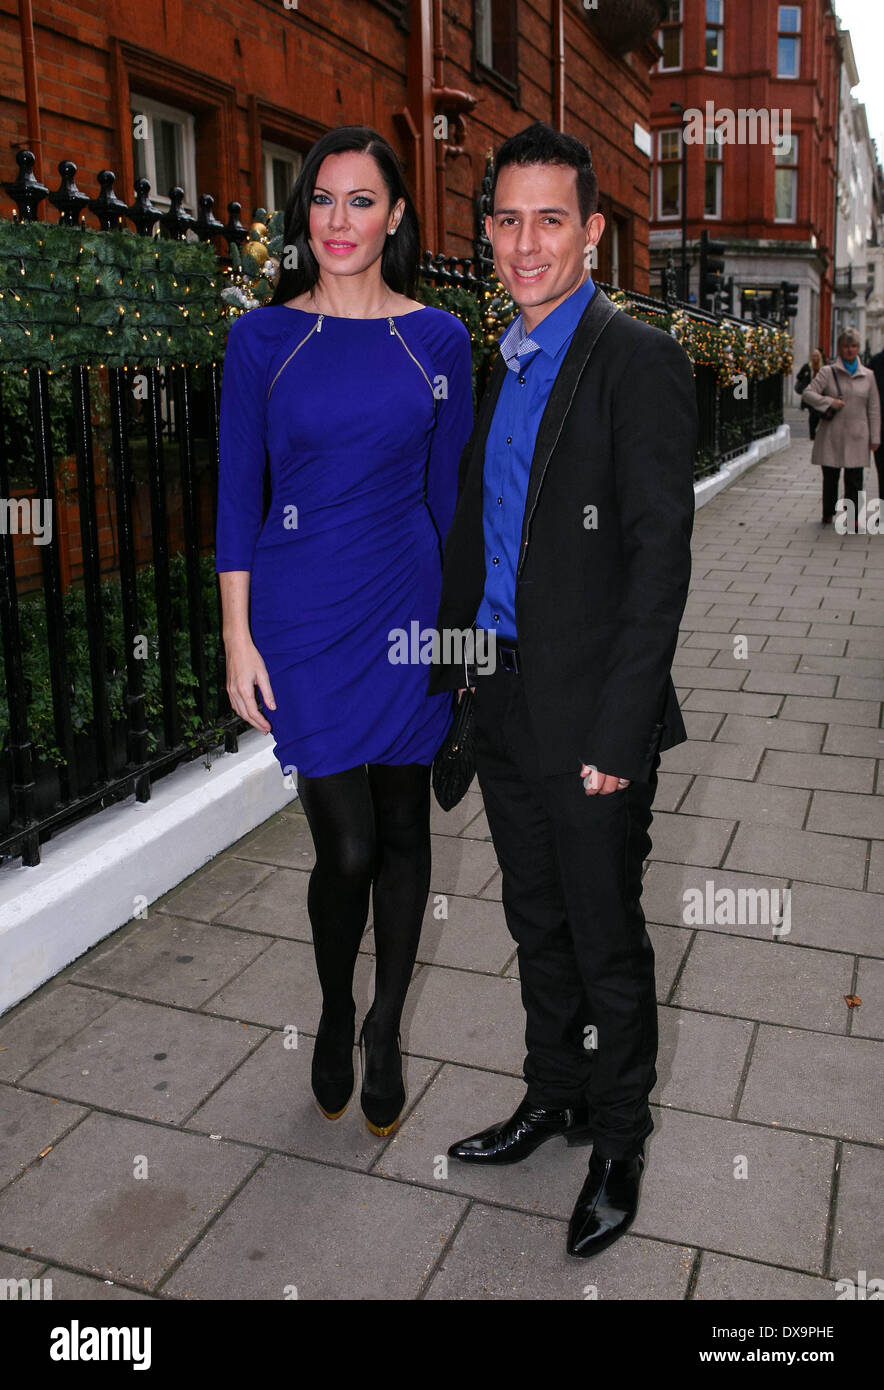 Linzi Stoppard and Ben Lee AVON and Women's Aid Empowering Women Awards 2012 - Outside Arrivals London, England - 22.11.12 Feat - Stock Image